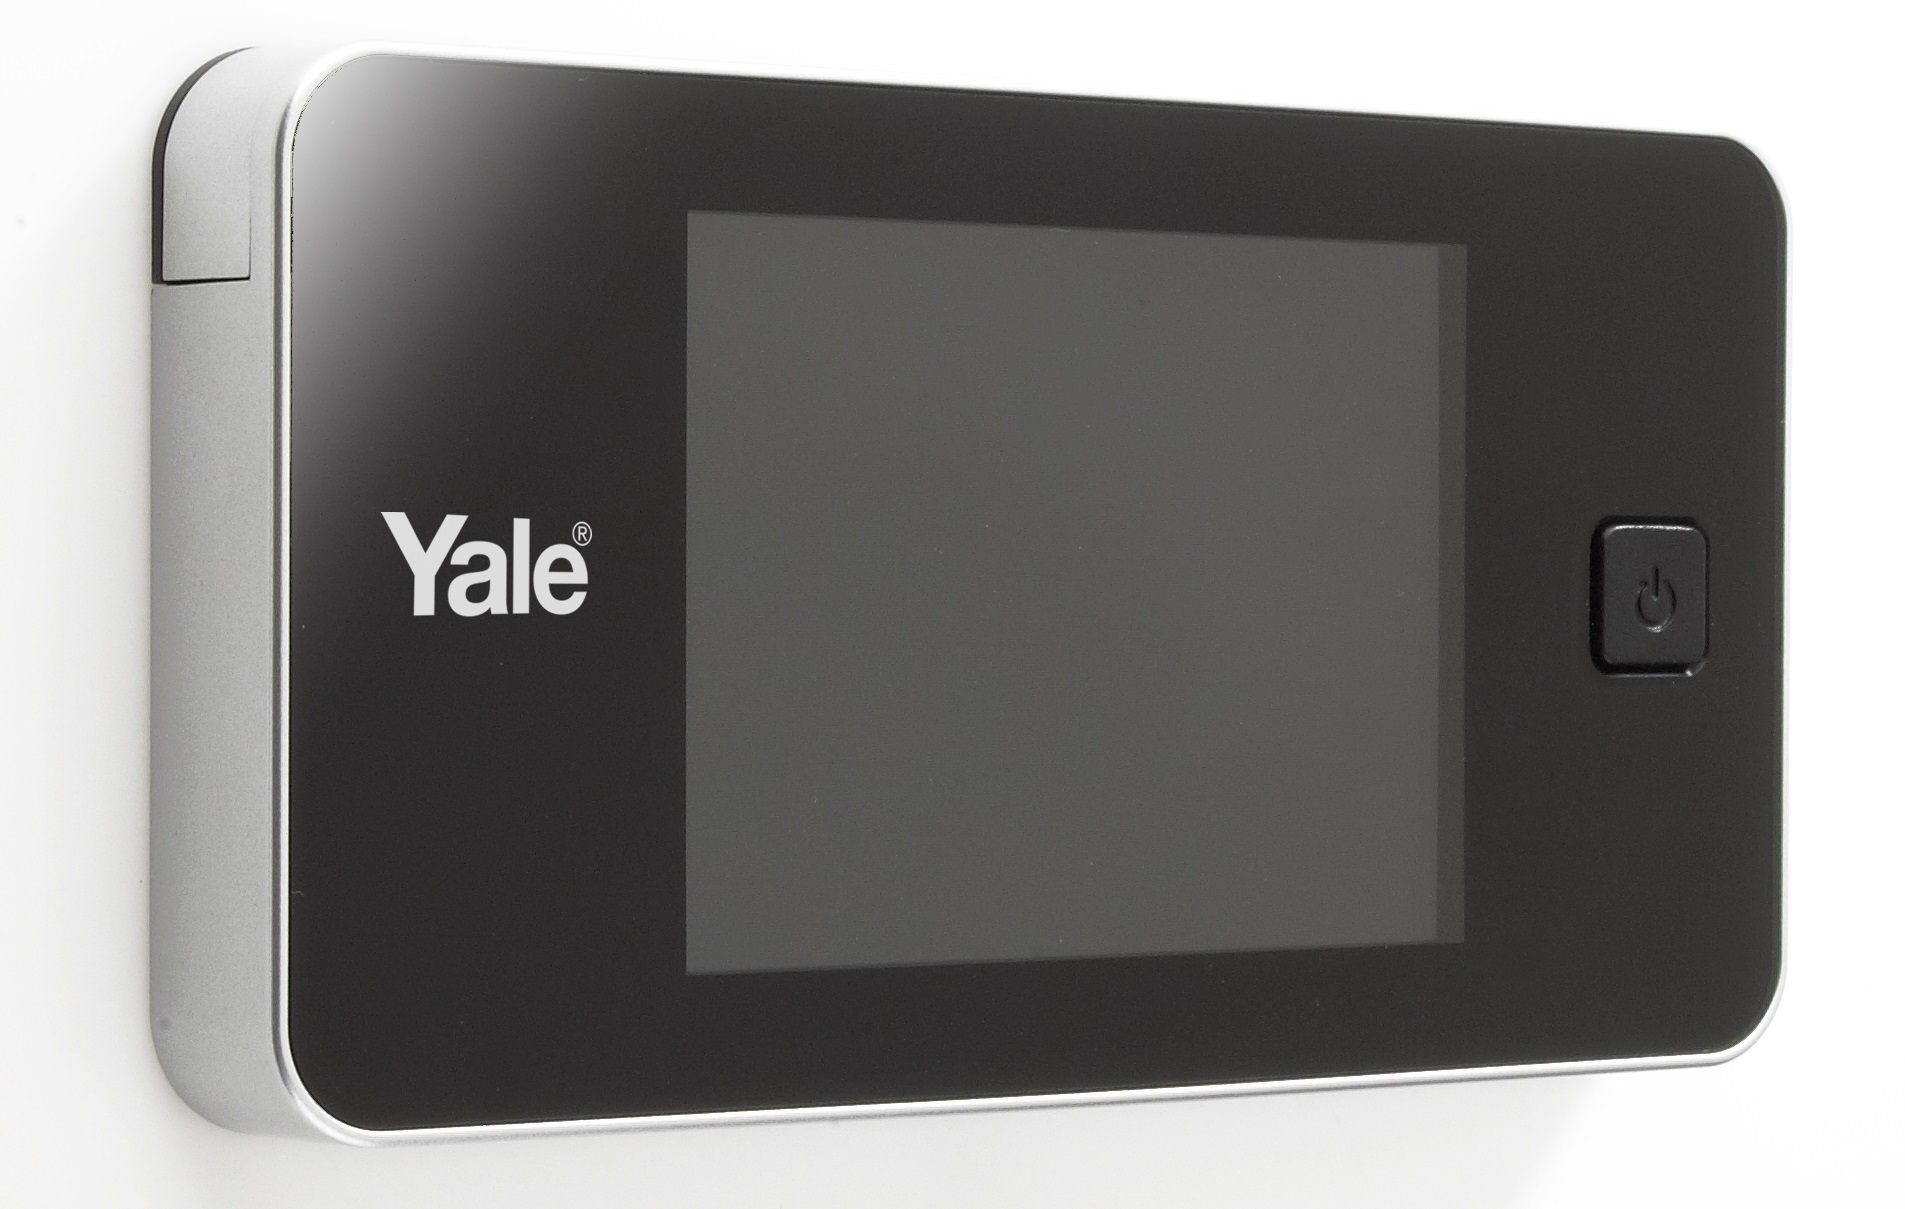 spioncino elettronico yale standard argento